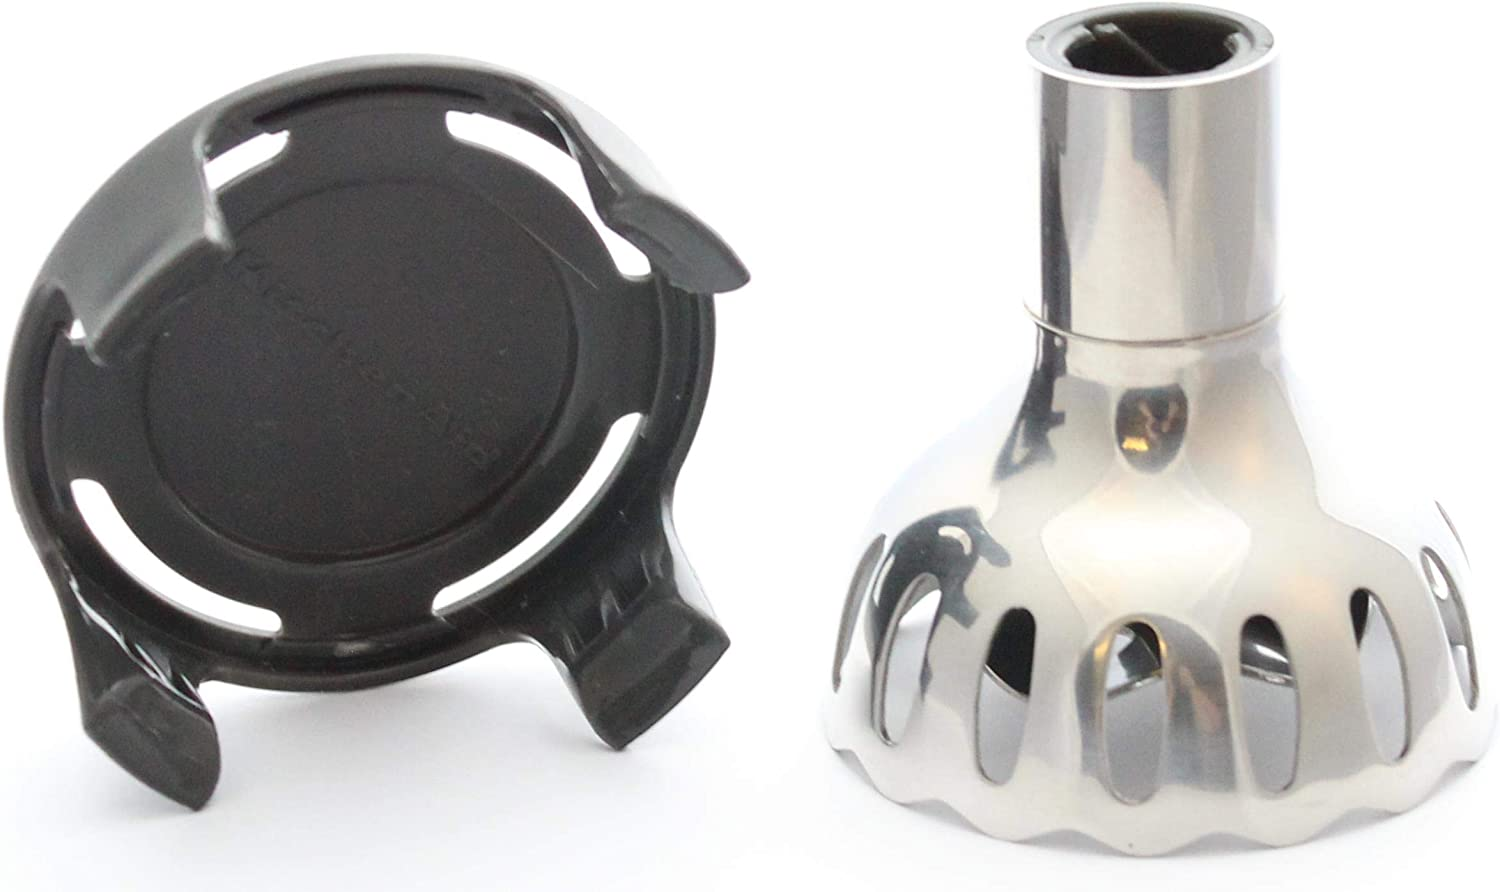 Replacement KHB009 Beater//Frother Bell Blade Assembly Attachment for KitchenAid Hand Blender KHB2561 KHB2571